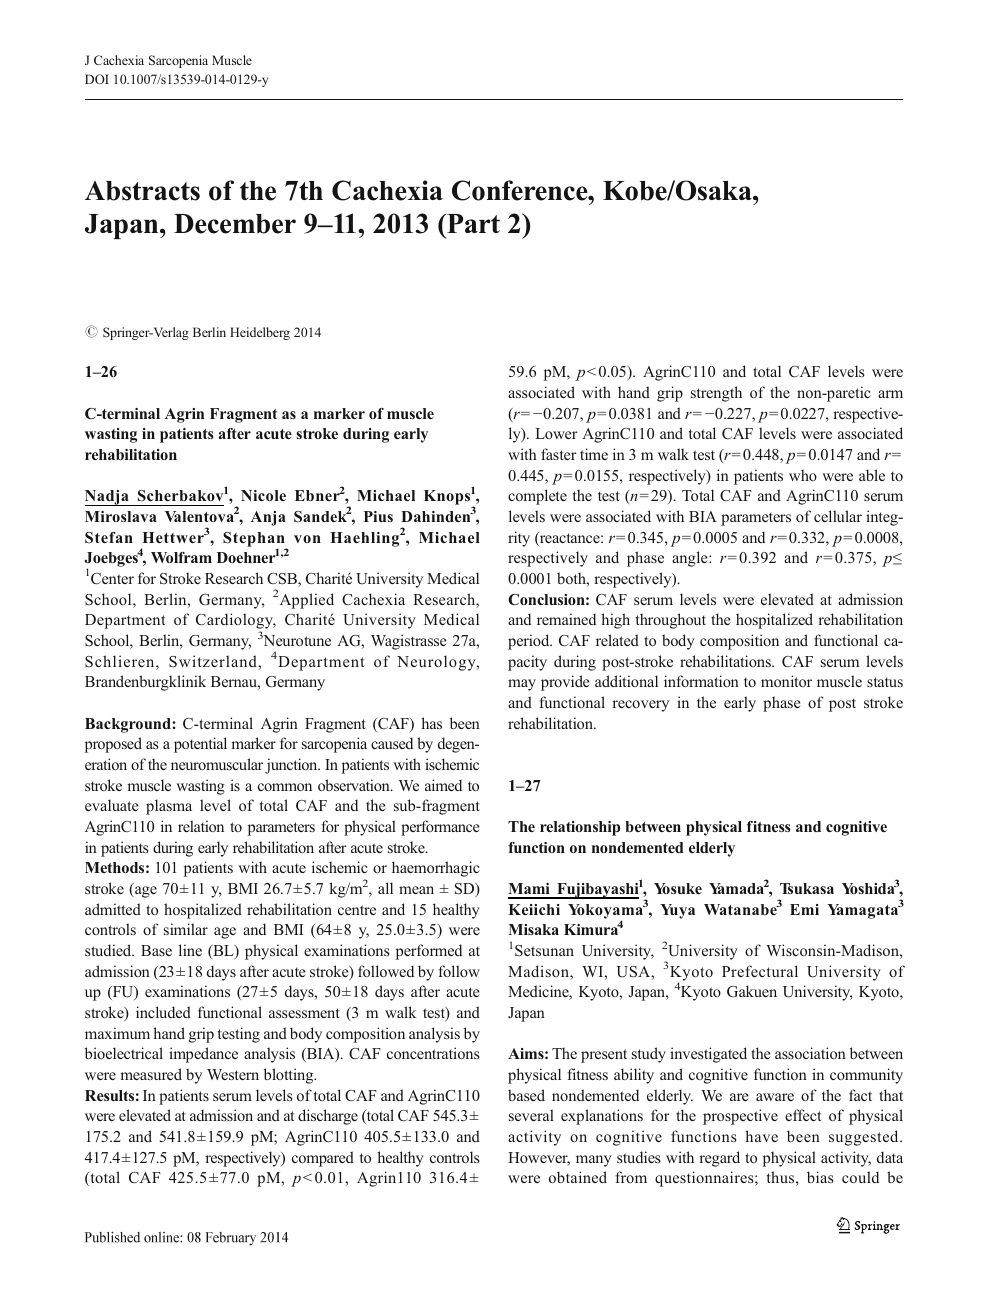 Abstracts of the 7th Cachexia Conference, Kobe/Osaka, Japan